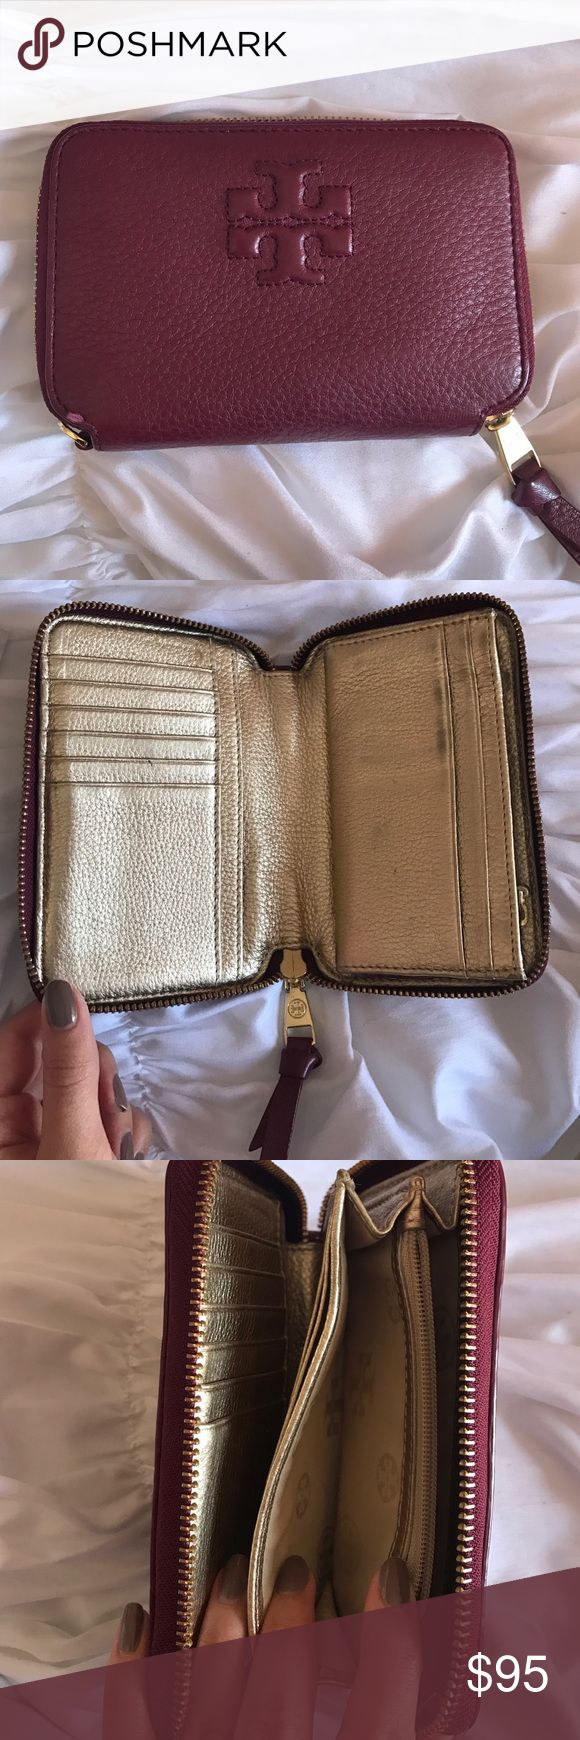 Tory Burch Smart Phone Wallet Deep purple wallet with gold interior. Fits an iPhone. Comes with original tag. Tory Burch Bags Wallets